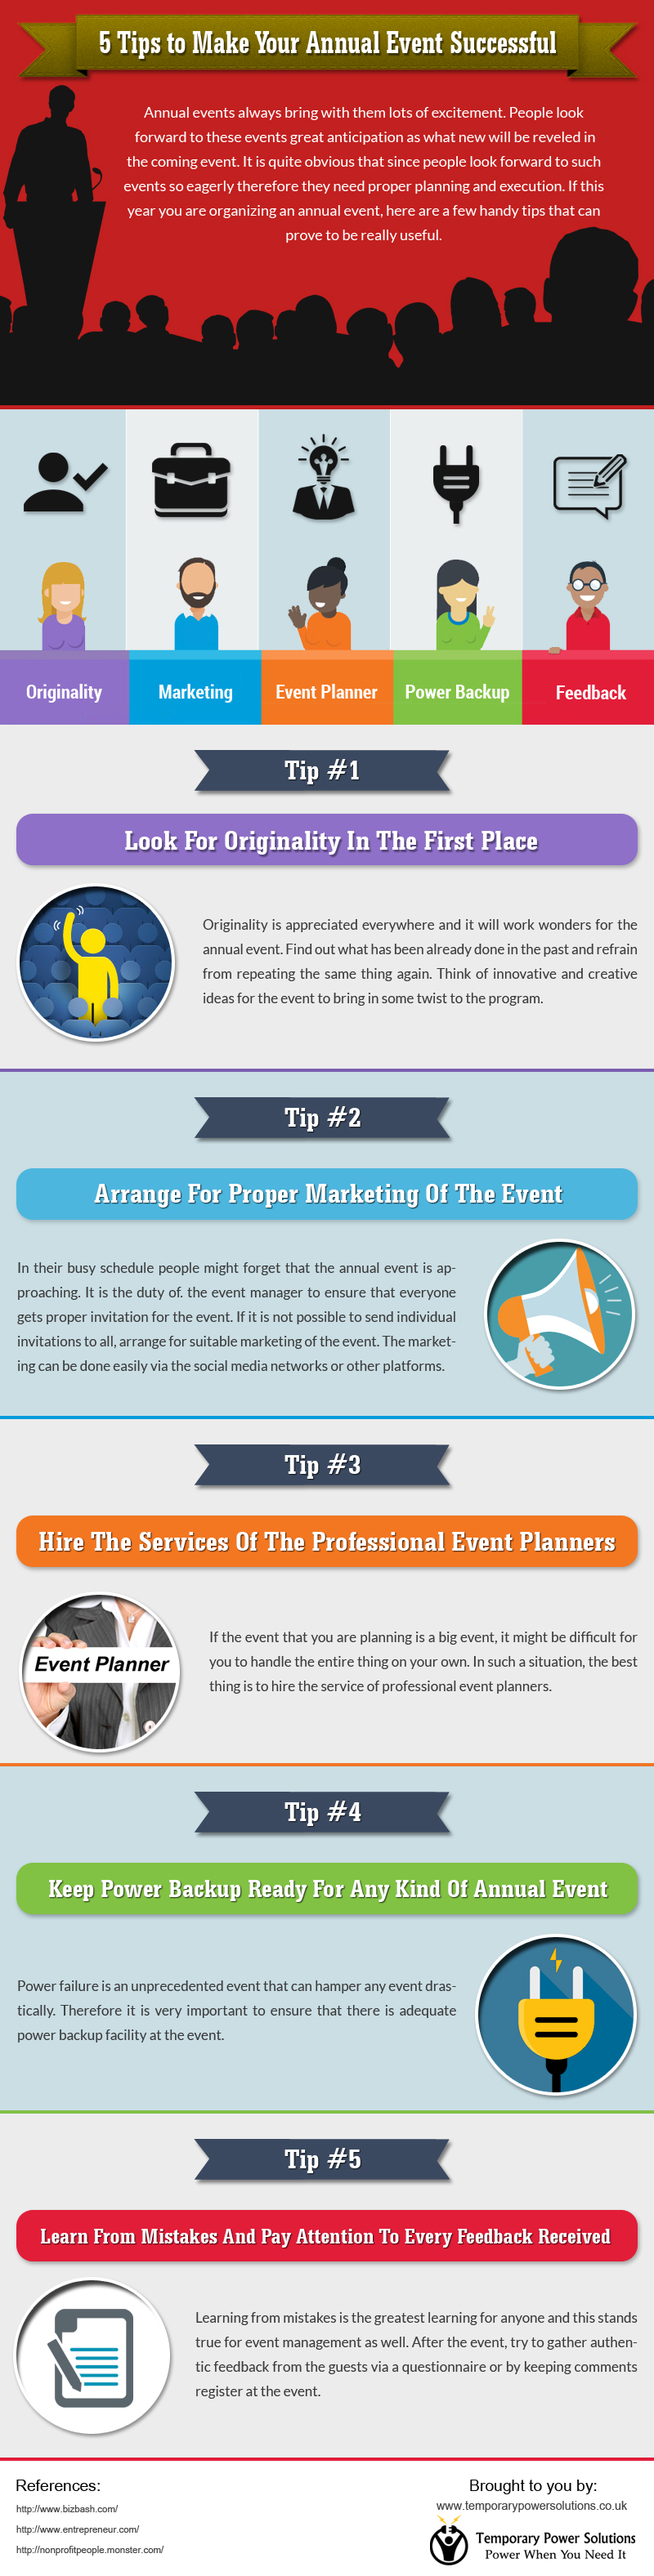 Infographic on how to make an event successful